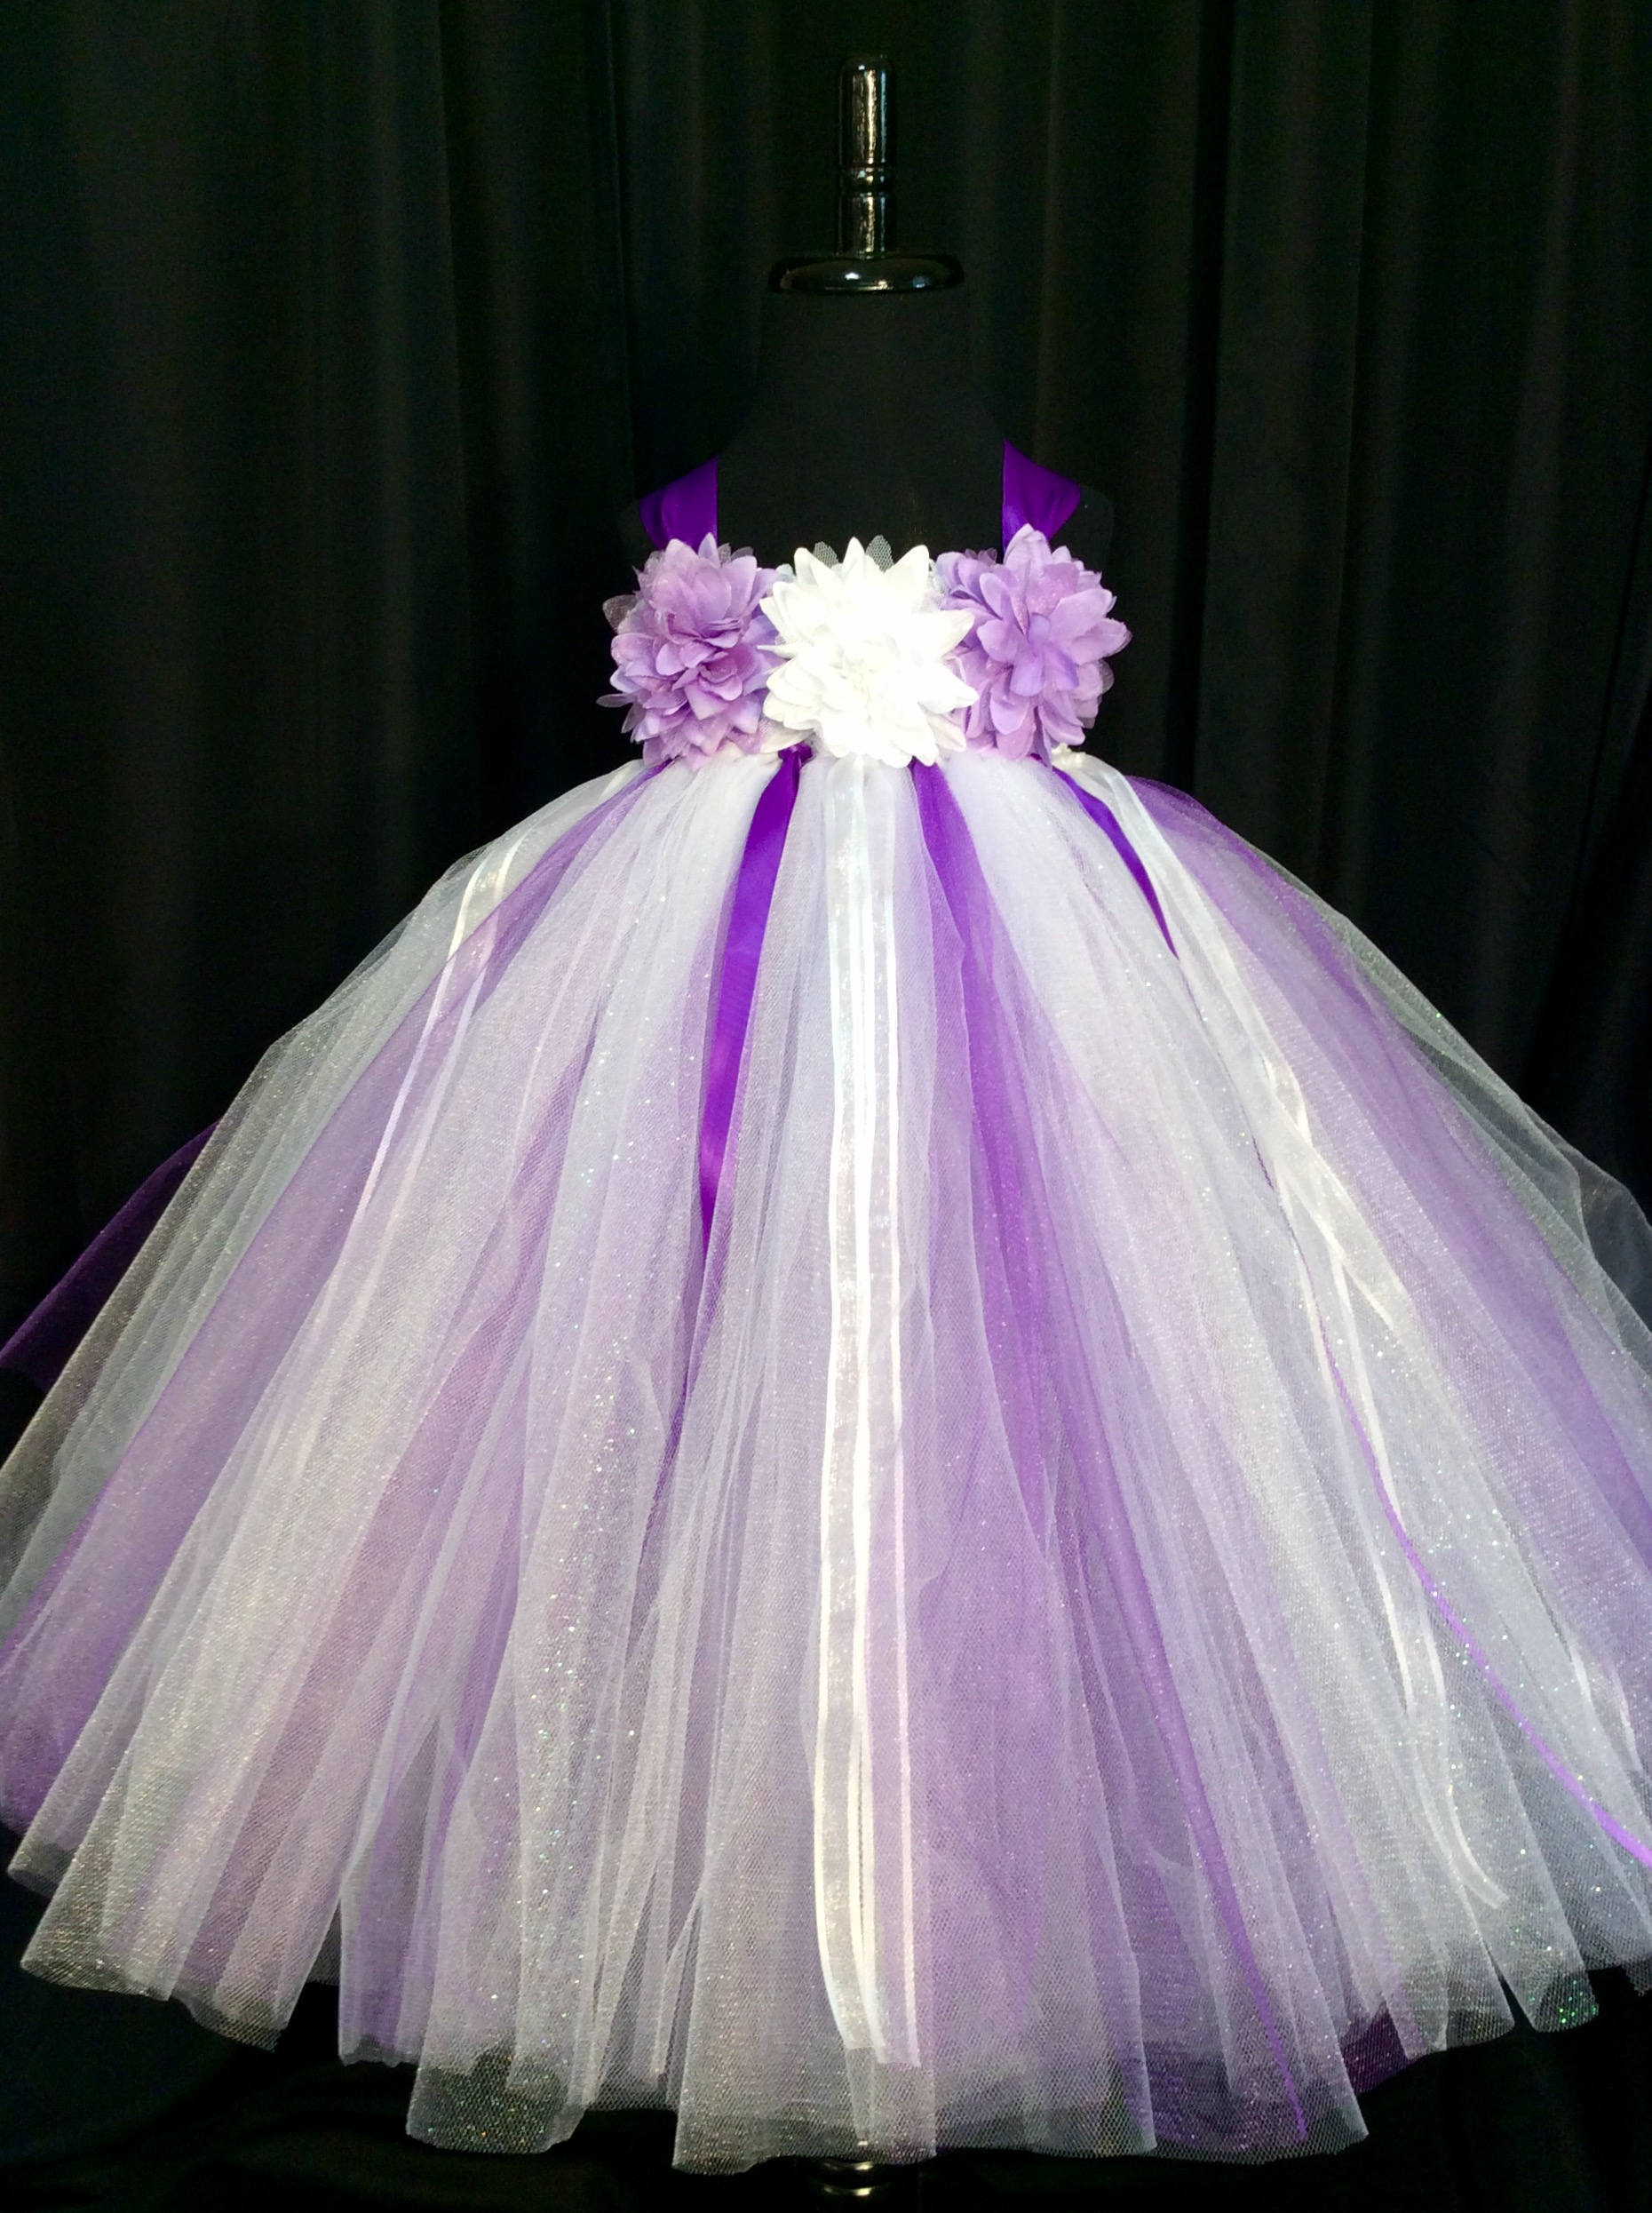 White and purple flower girl dress tulle flower girl dress tutu white and purple flower girl dress tulle flower girl dress tutu dress for girls tutu flower girl dress wedding white flower girl dress mightylinksfo